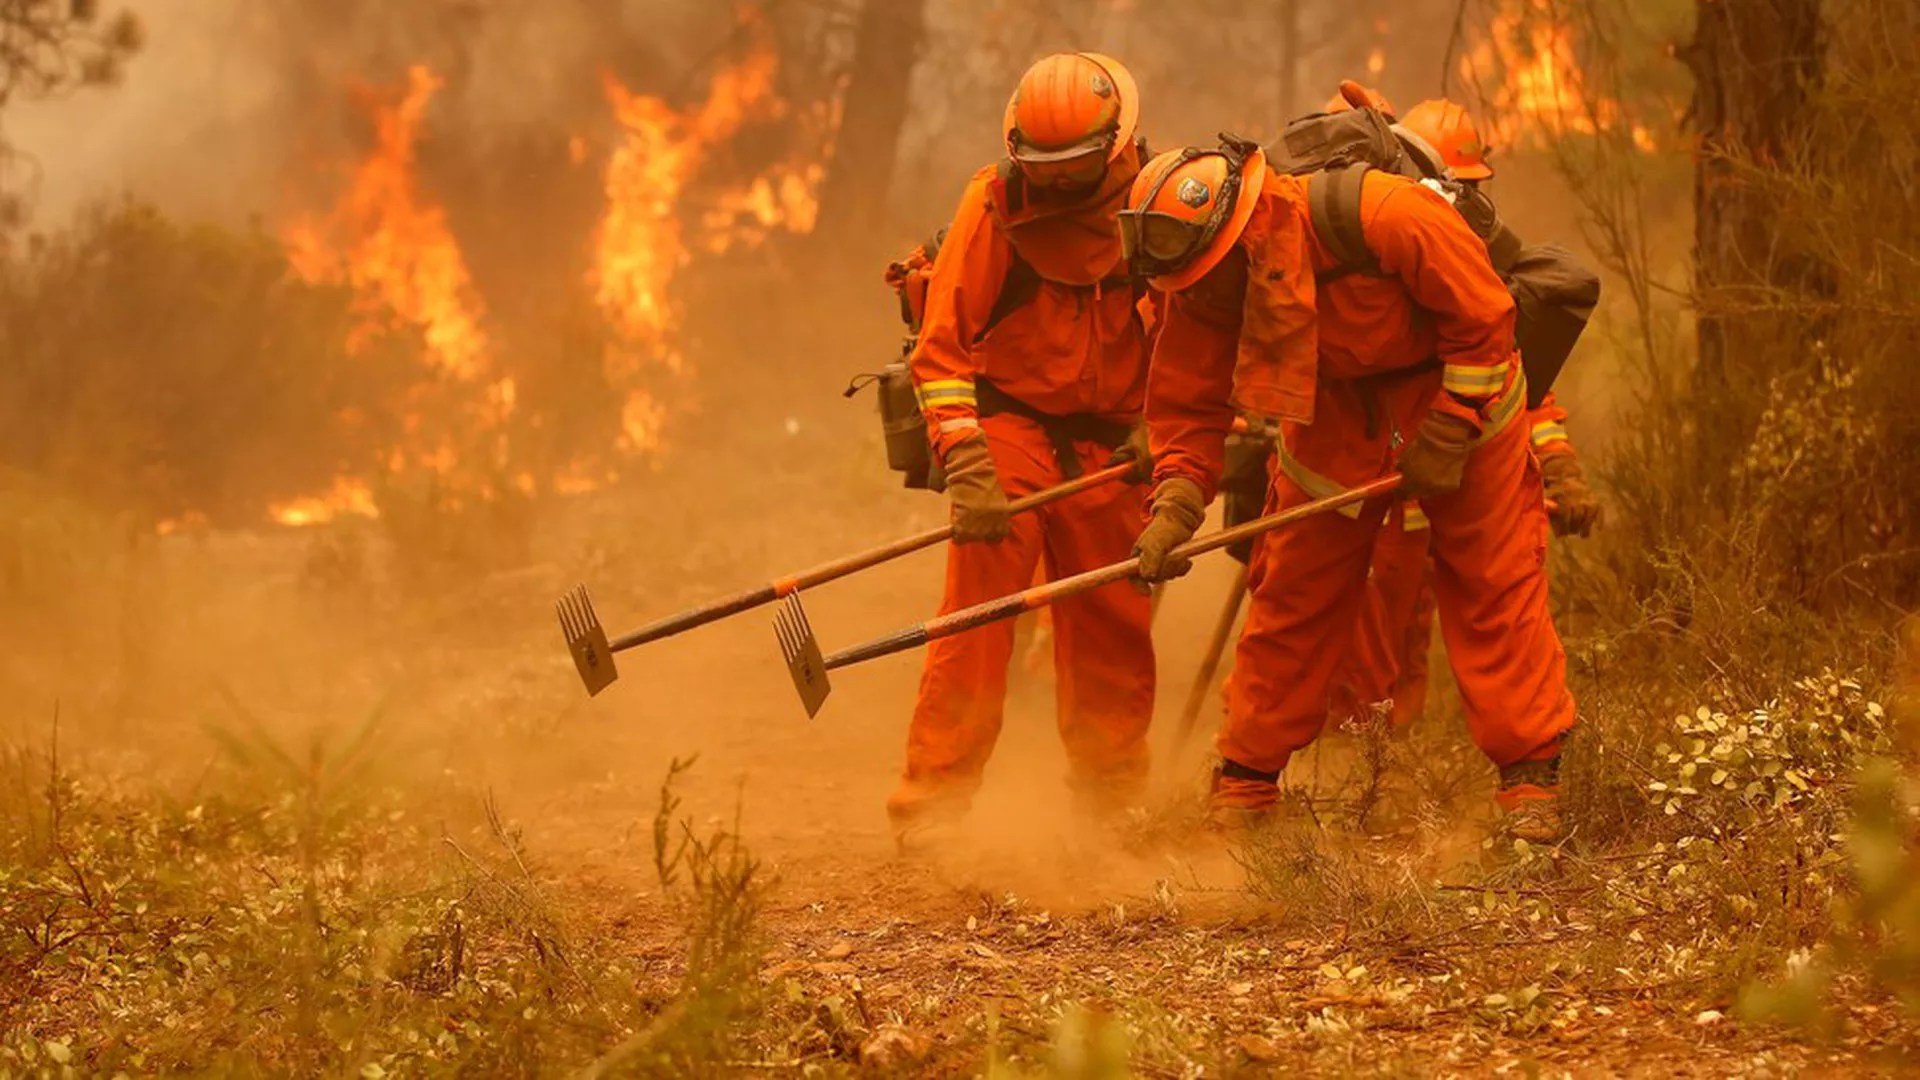 The Angels In Orange Fighting California S Fires Axios